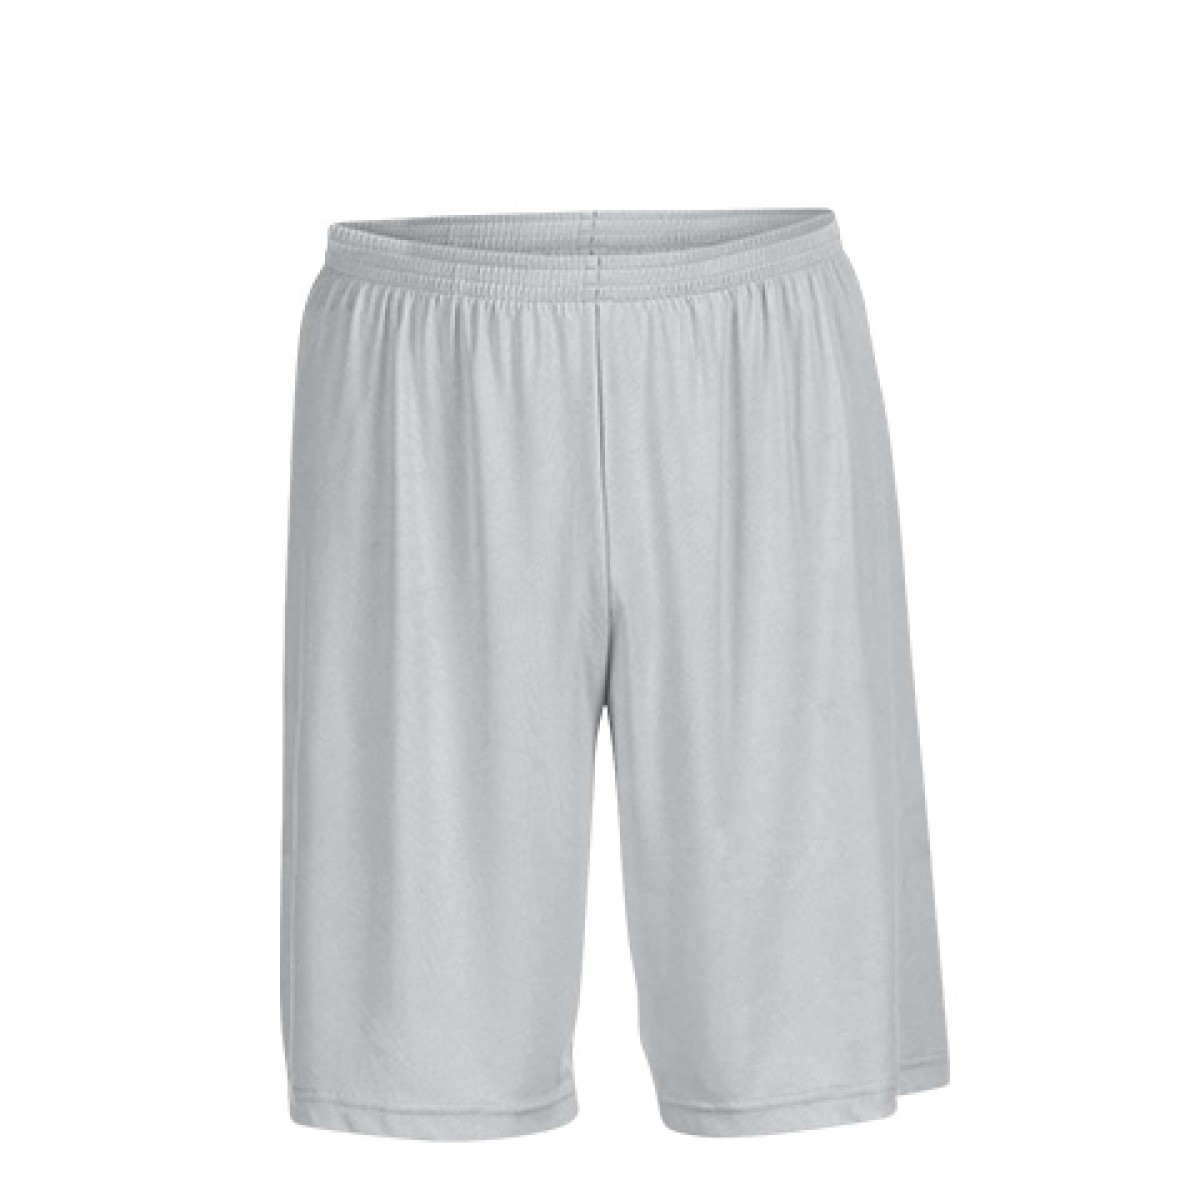 Men's Performance Shorts-Silver-S